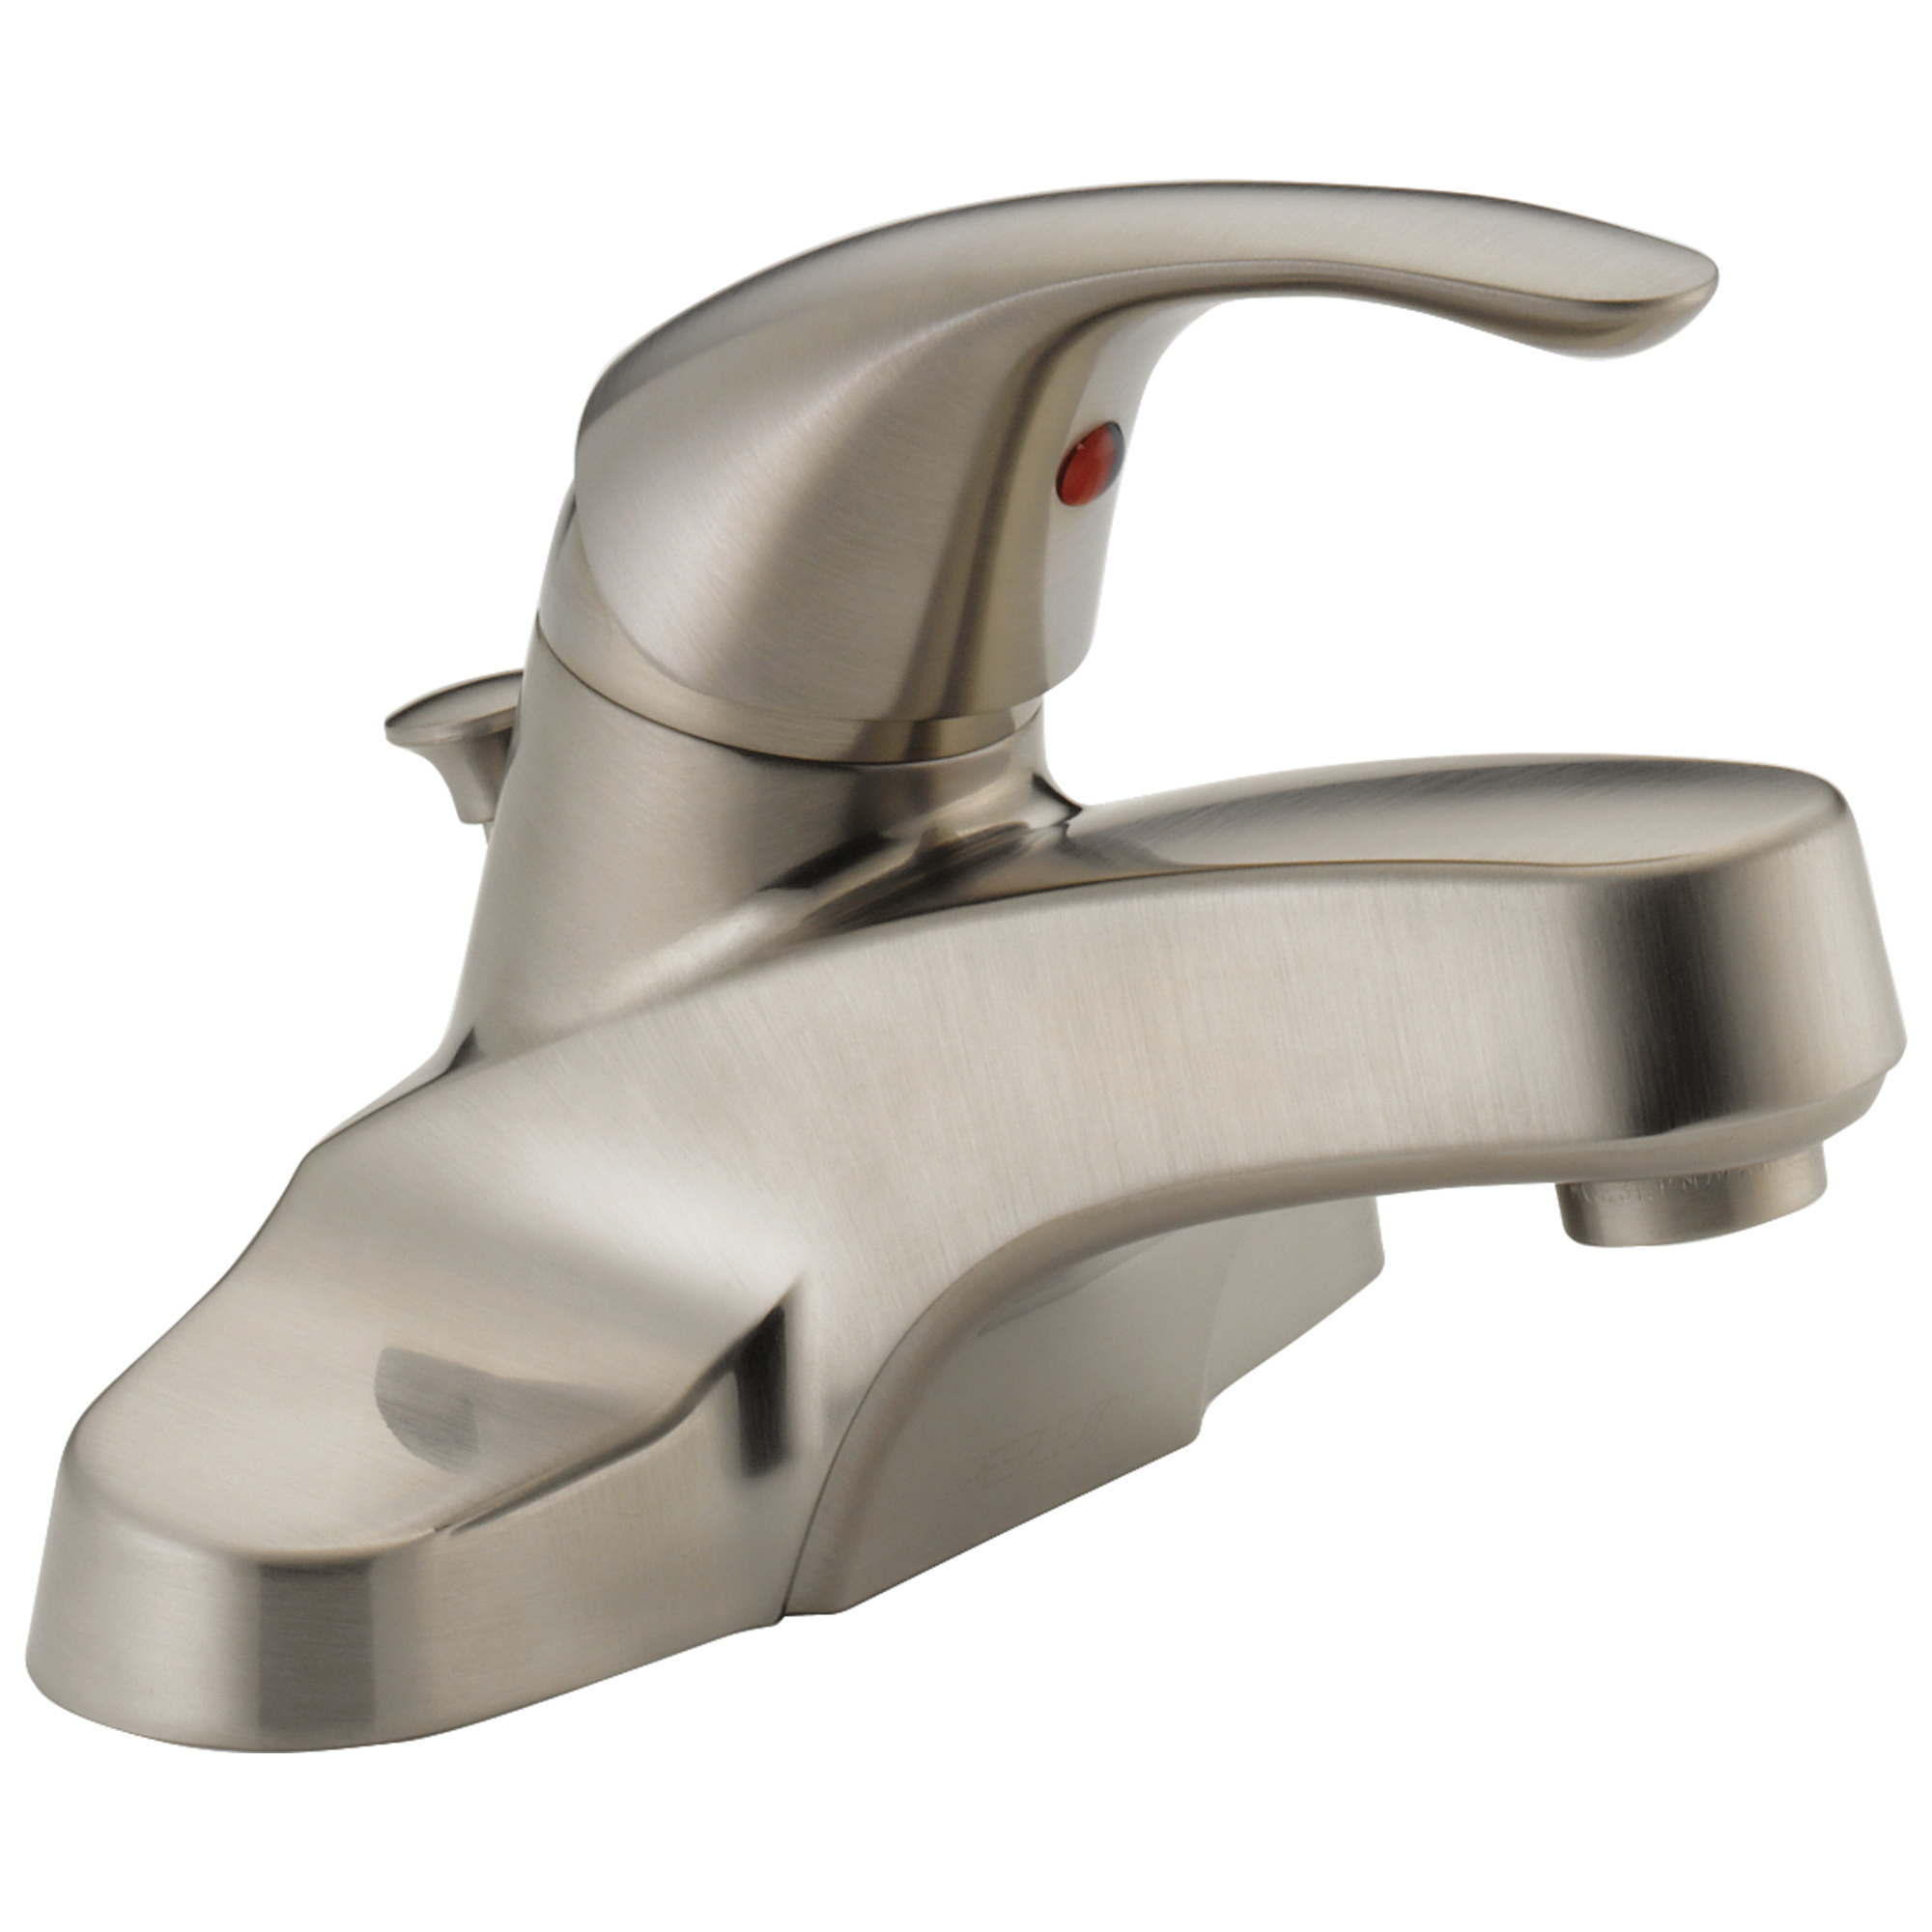 Peerless® P188620LF-BN-M Centerset Lavatory Faucet, Brushed Nickel, 1 Handles, Pop-Up Drain, 1.5 gpm